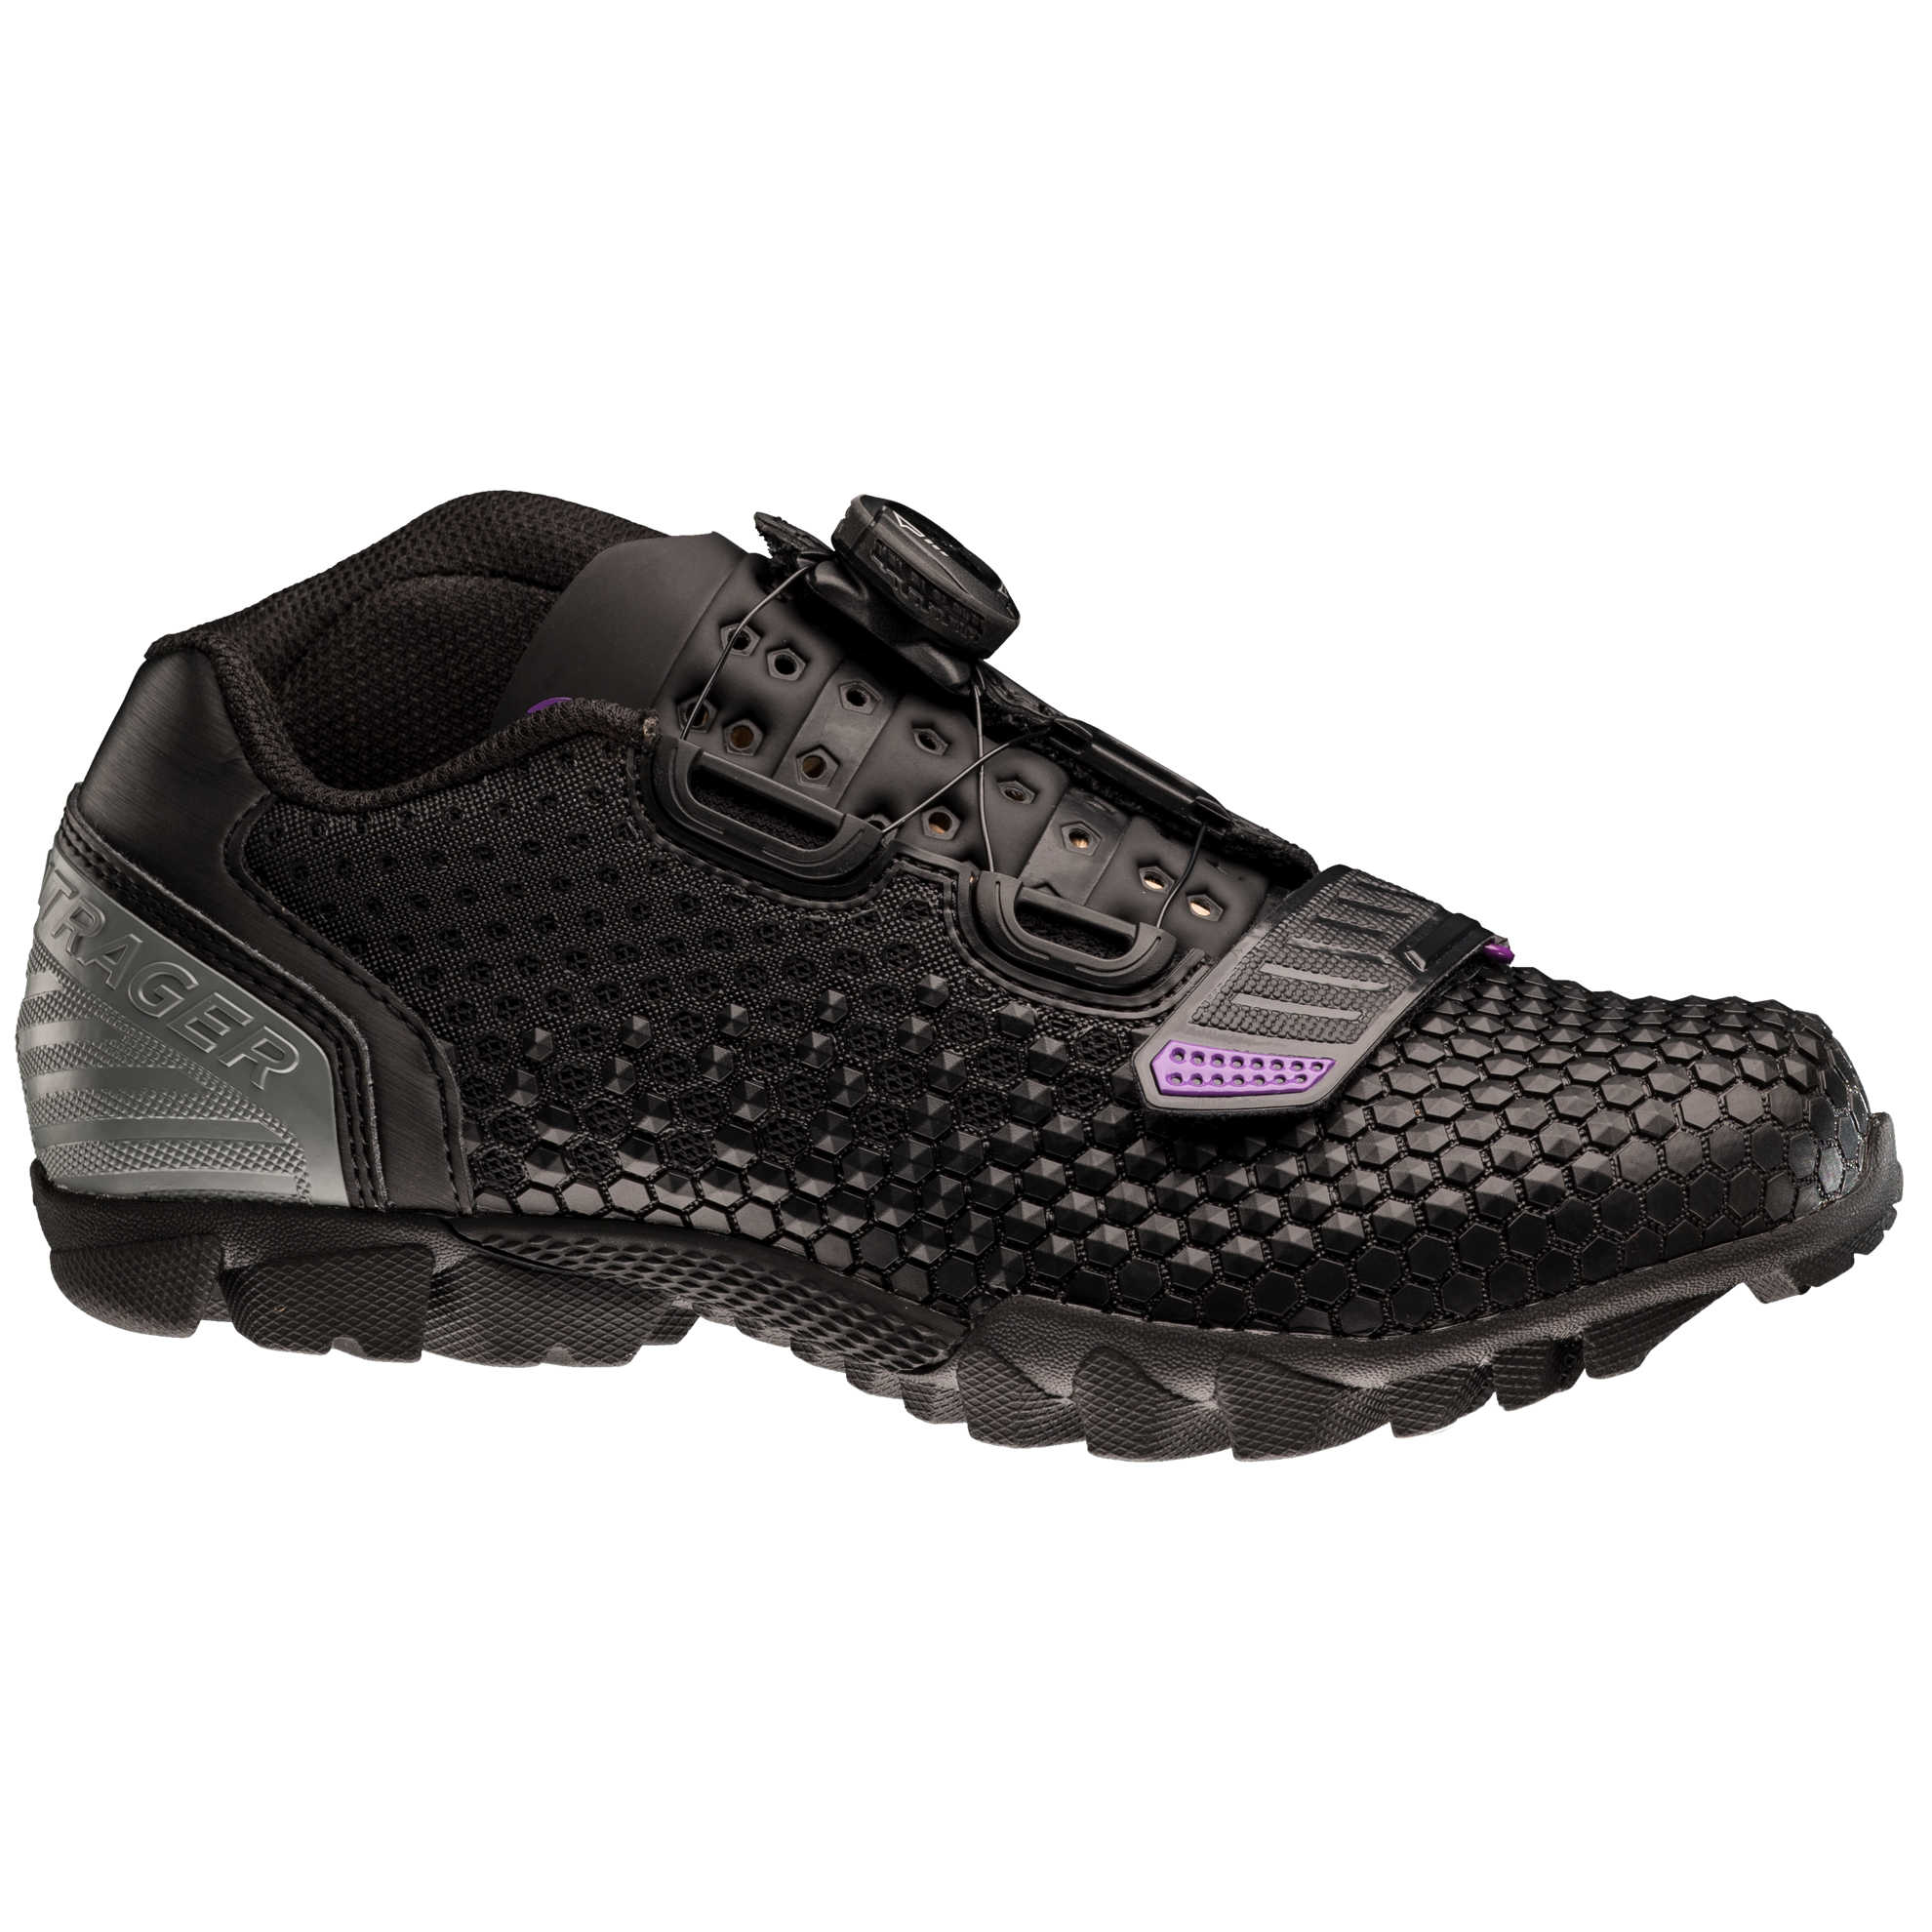 Bontrager Women's Tario  Shoe : Black